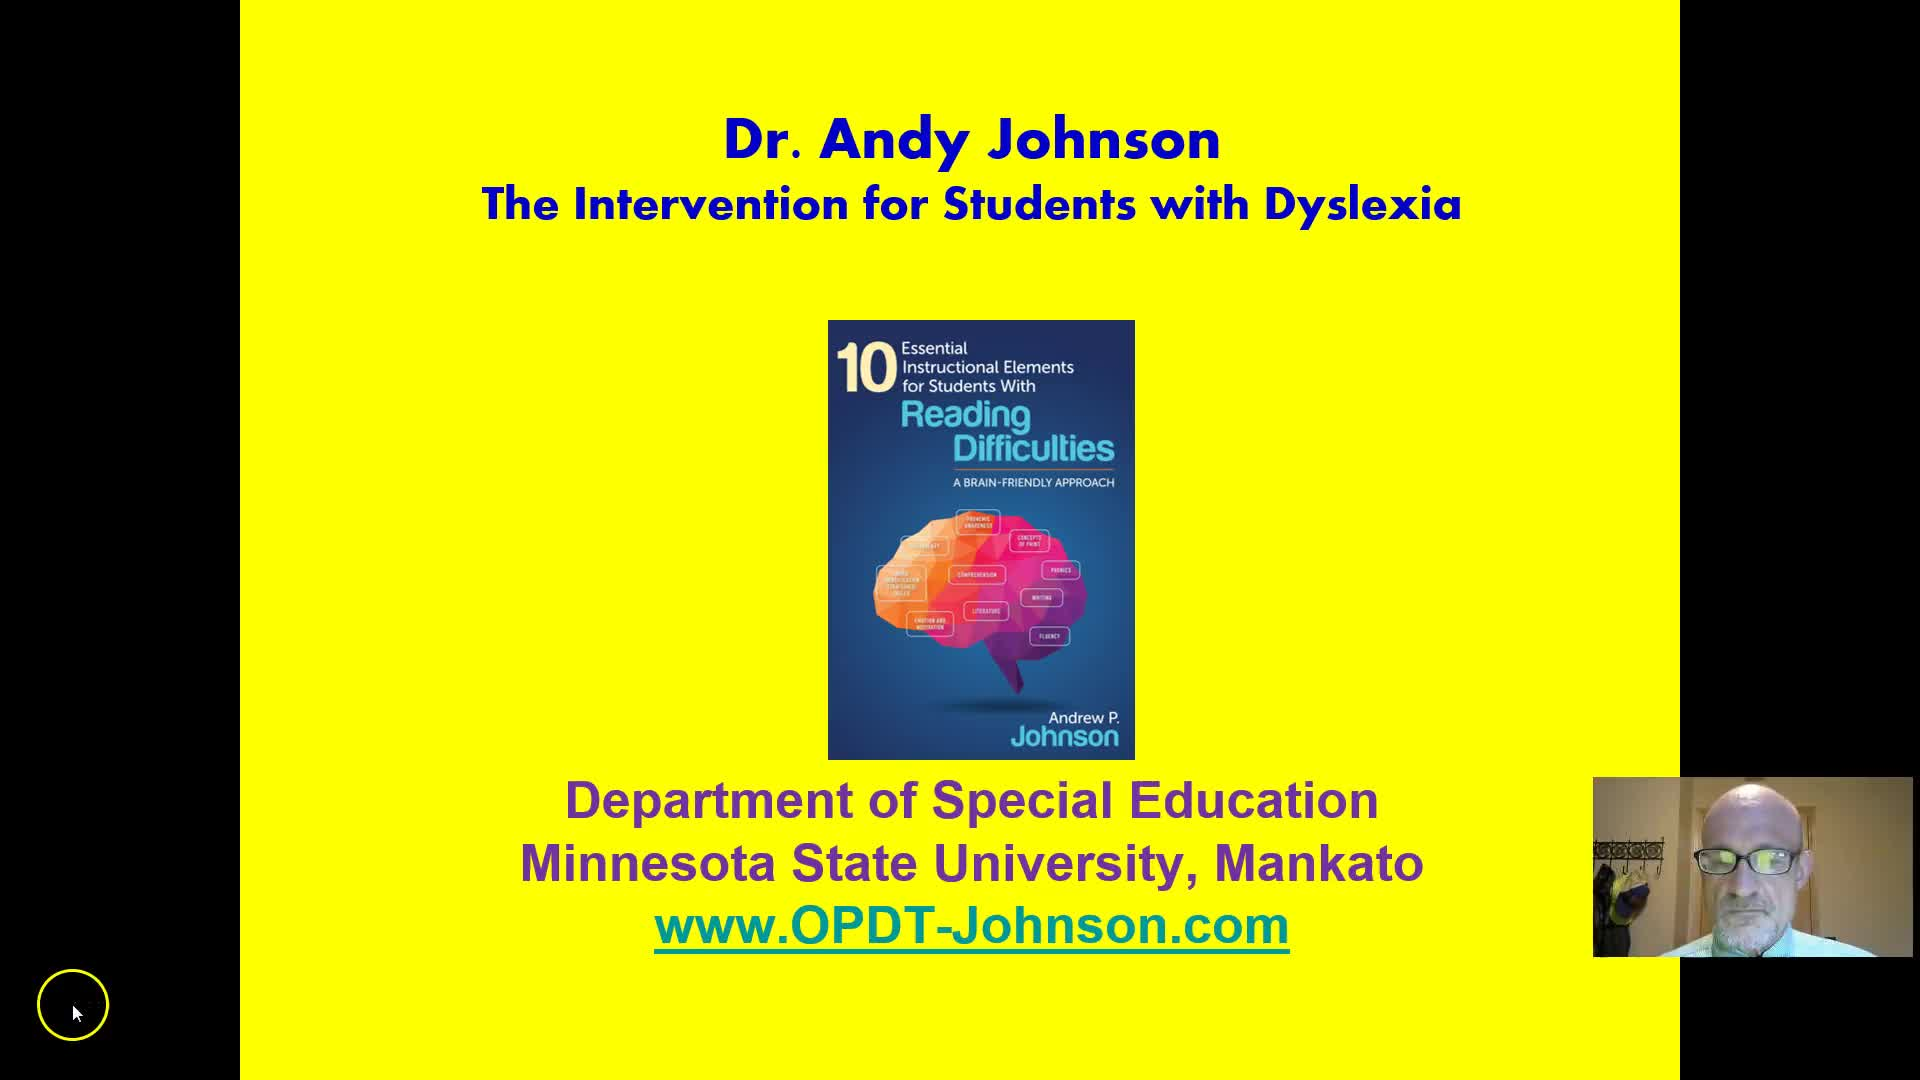 DYSLEXIA: THE INTERVENTION